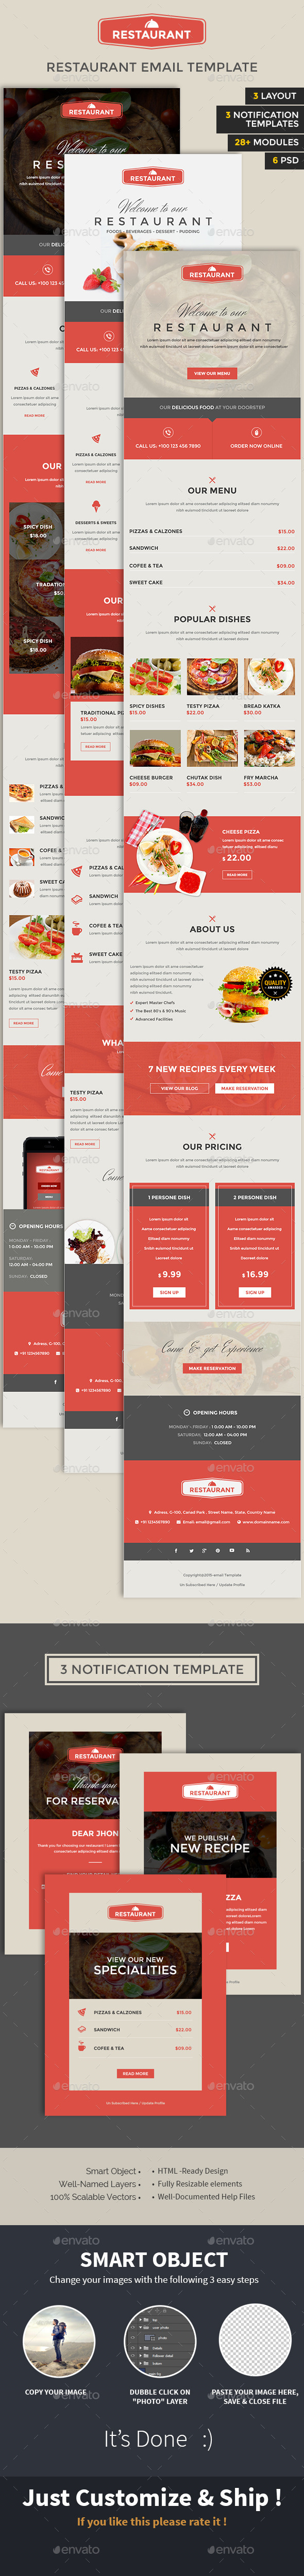 GraphicRiver Restaurant Email PSD Template 10347090